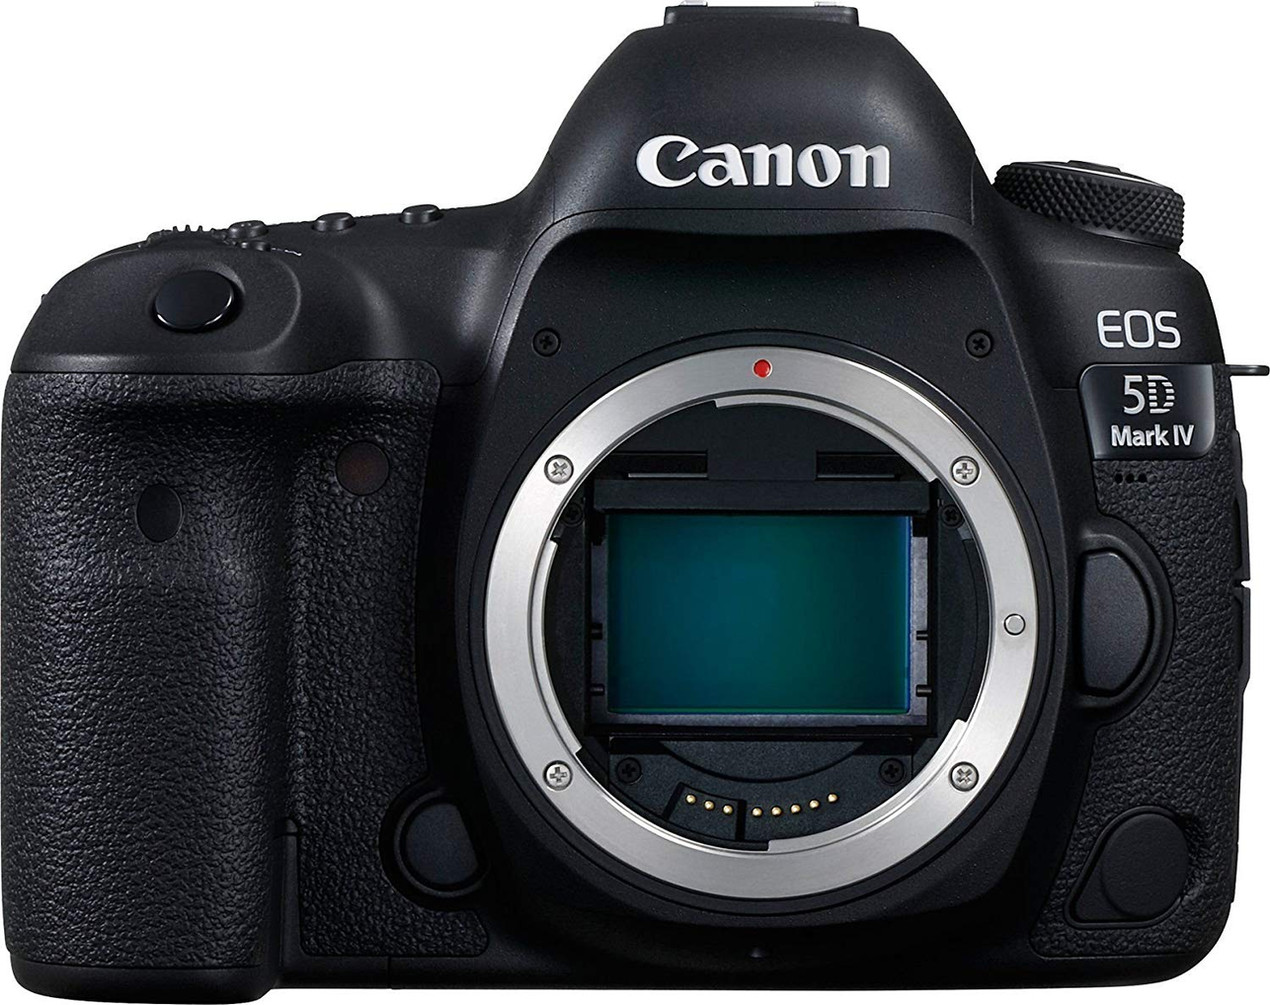 Canon EOS 5D Mark IV DSLR Camera for beginner Astrophotographers, affordable camera for amateur astrophotography. How to photograph the Milky Way and deep sky objects with a DSLR camera